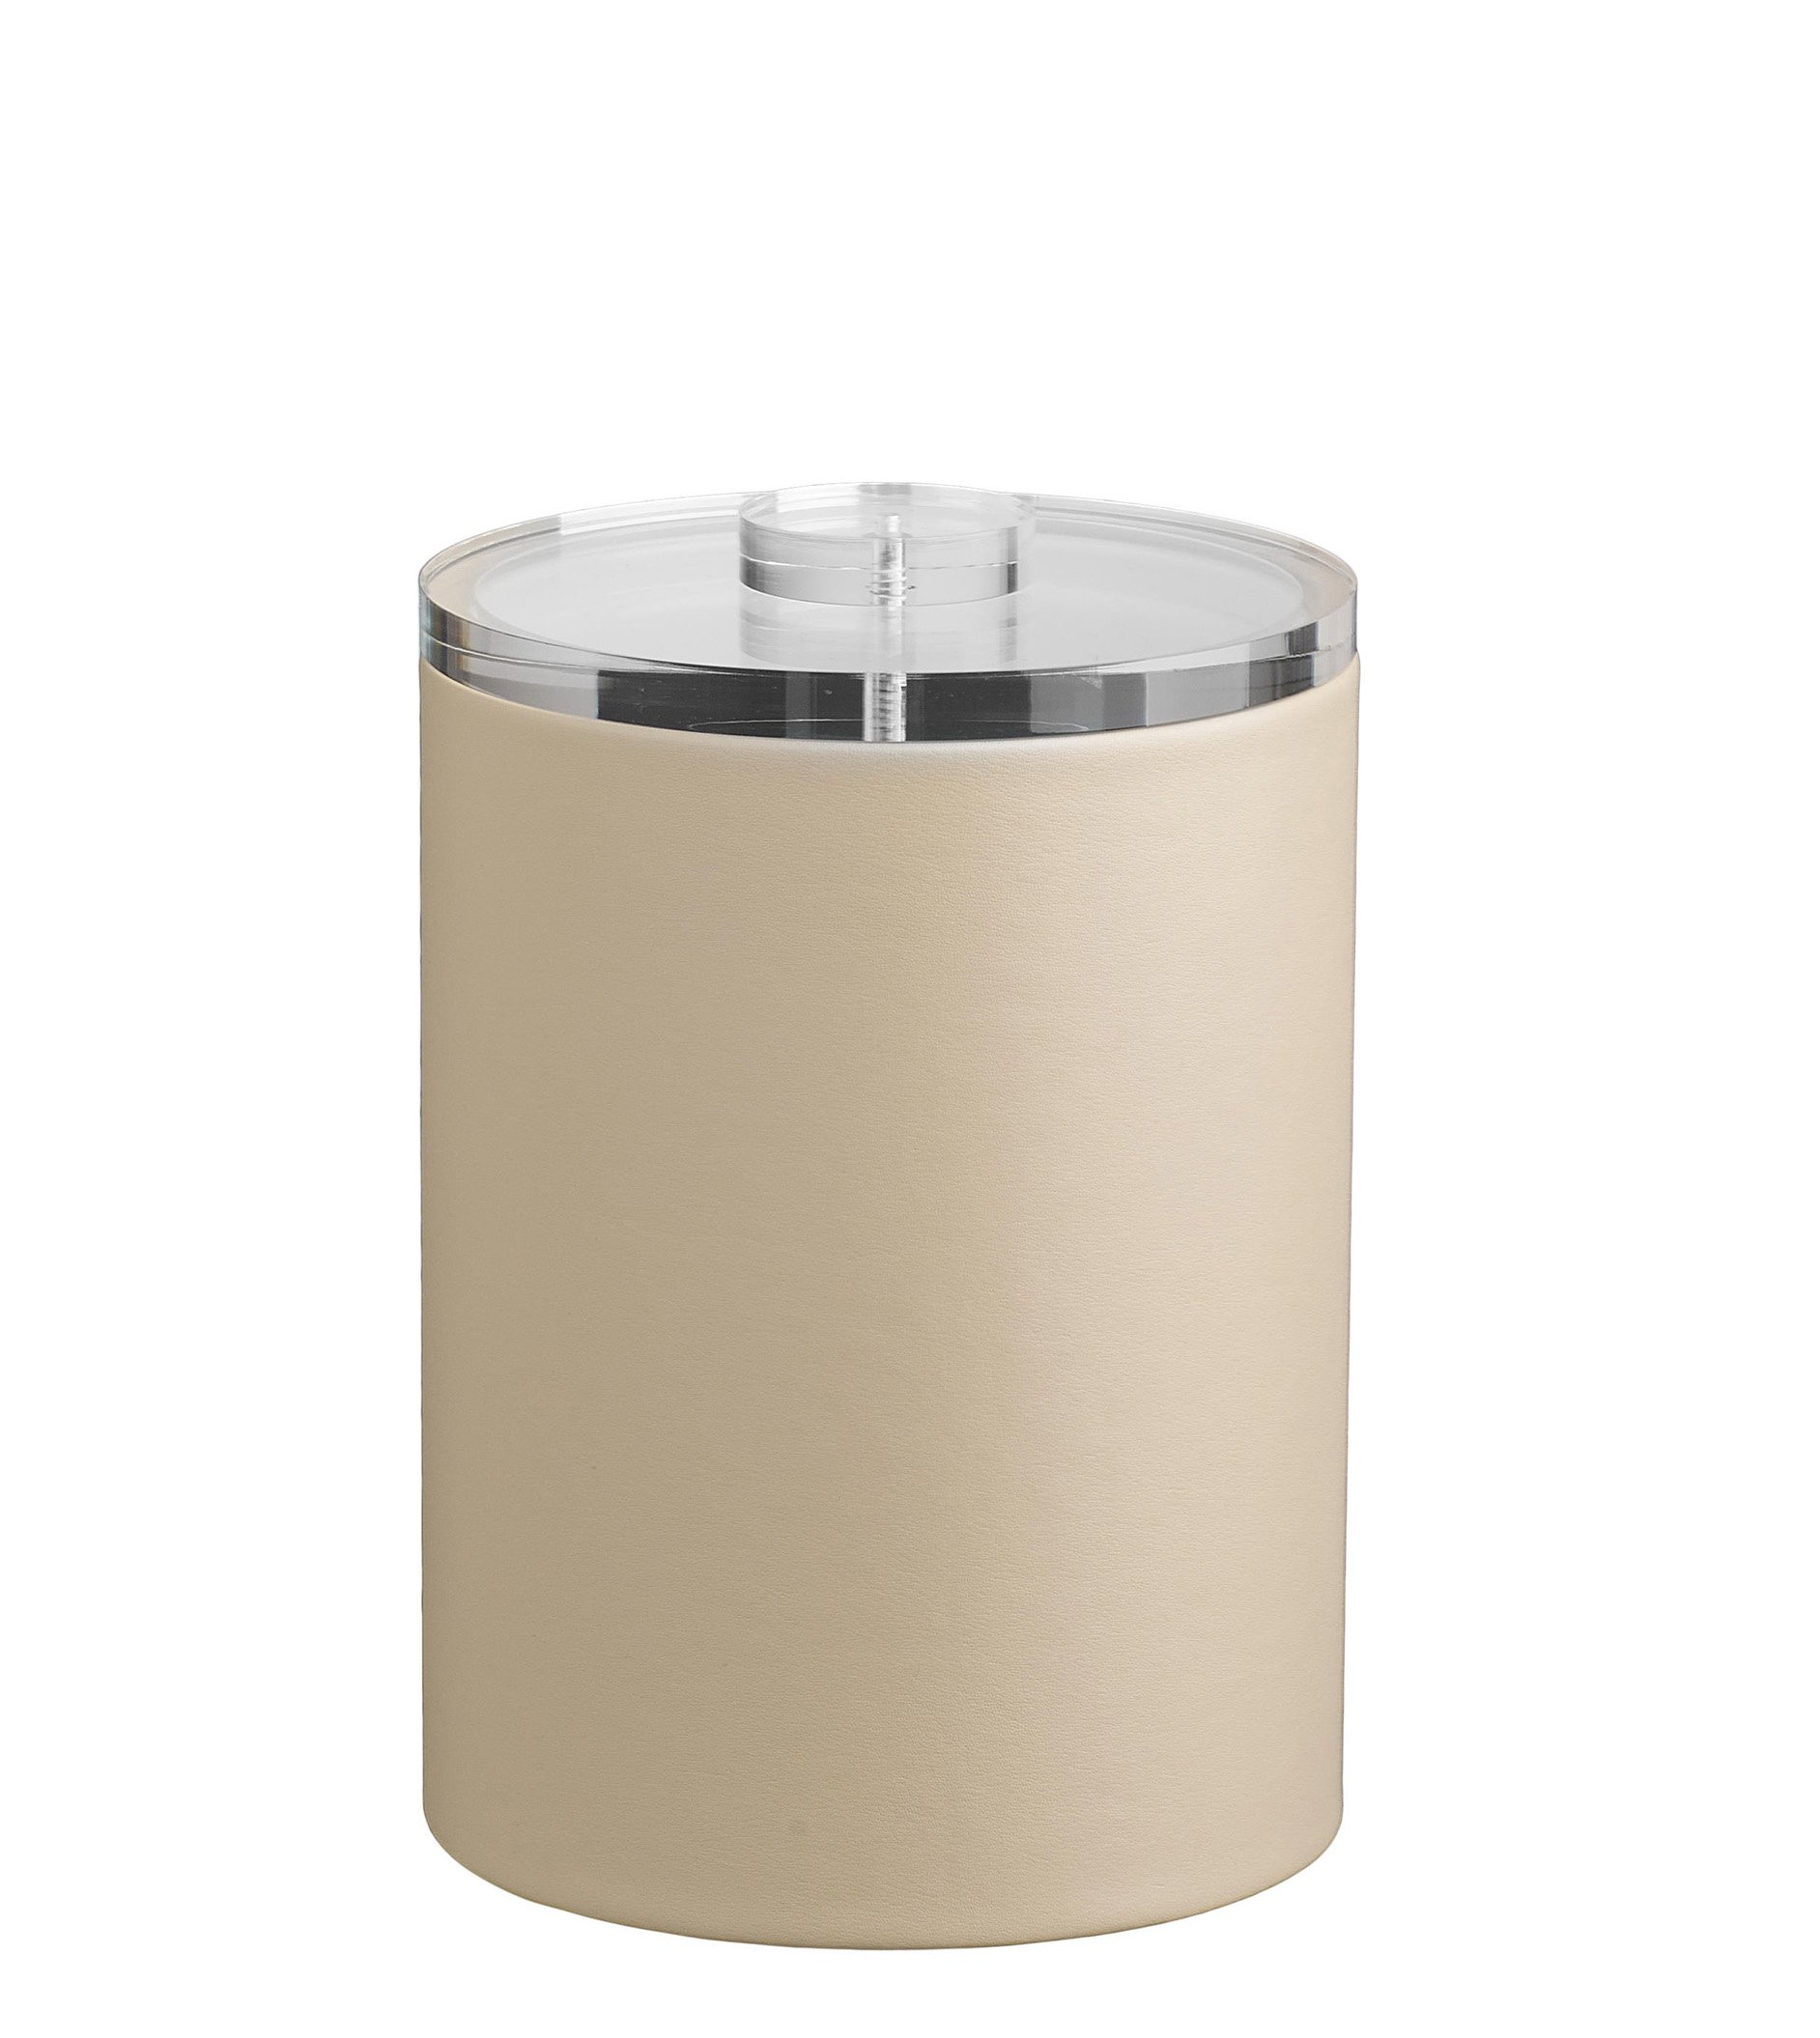 Kraftware Grant Signature Home Contempo Collection 2-Quart Ice Bucket with Lucite Lid - Beige